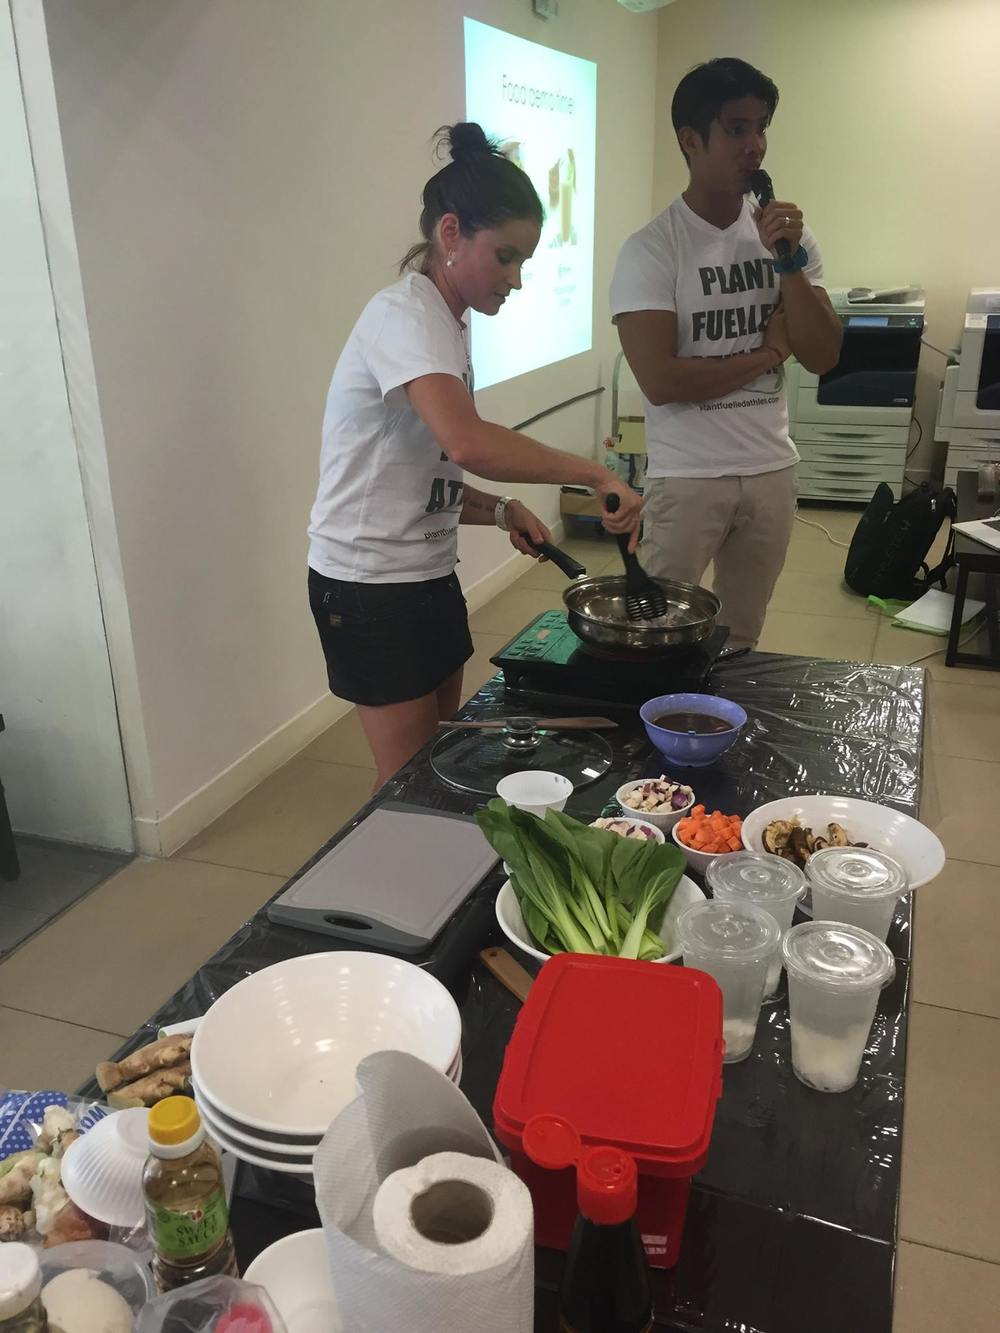 Cooking workshop at James Cook University